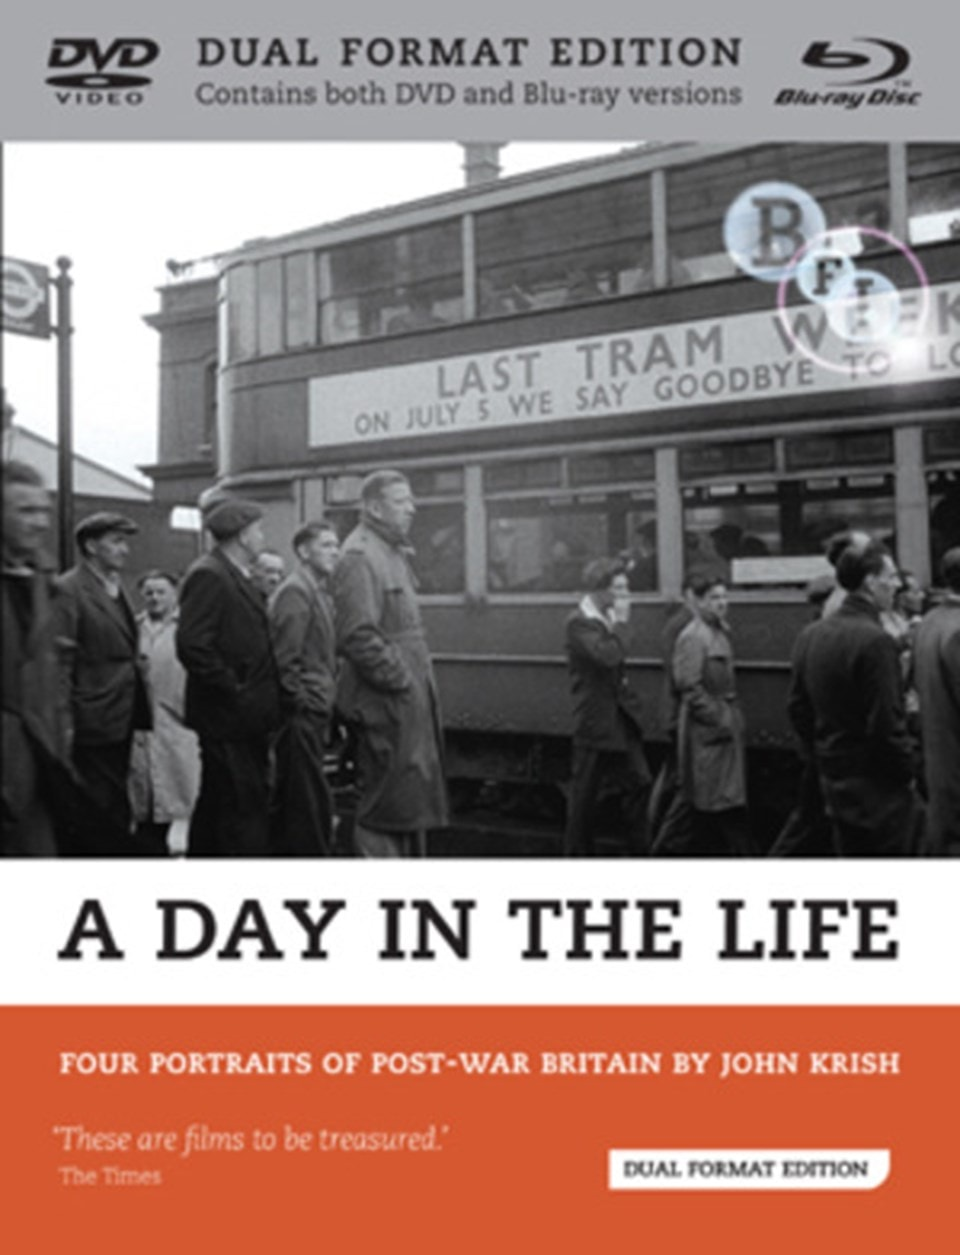 A Day in the Life - Four Portraits of Post-war Britain - 1